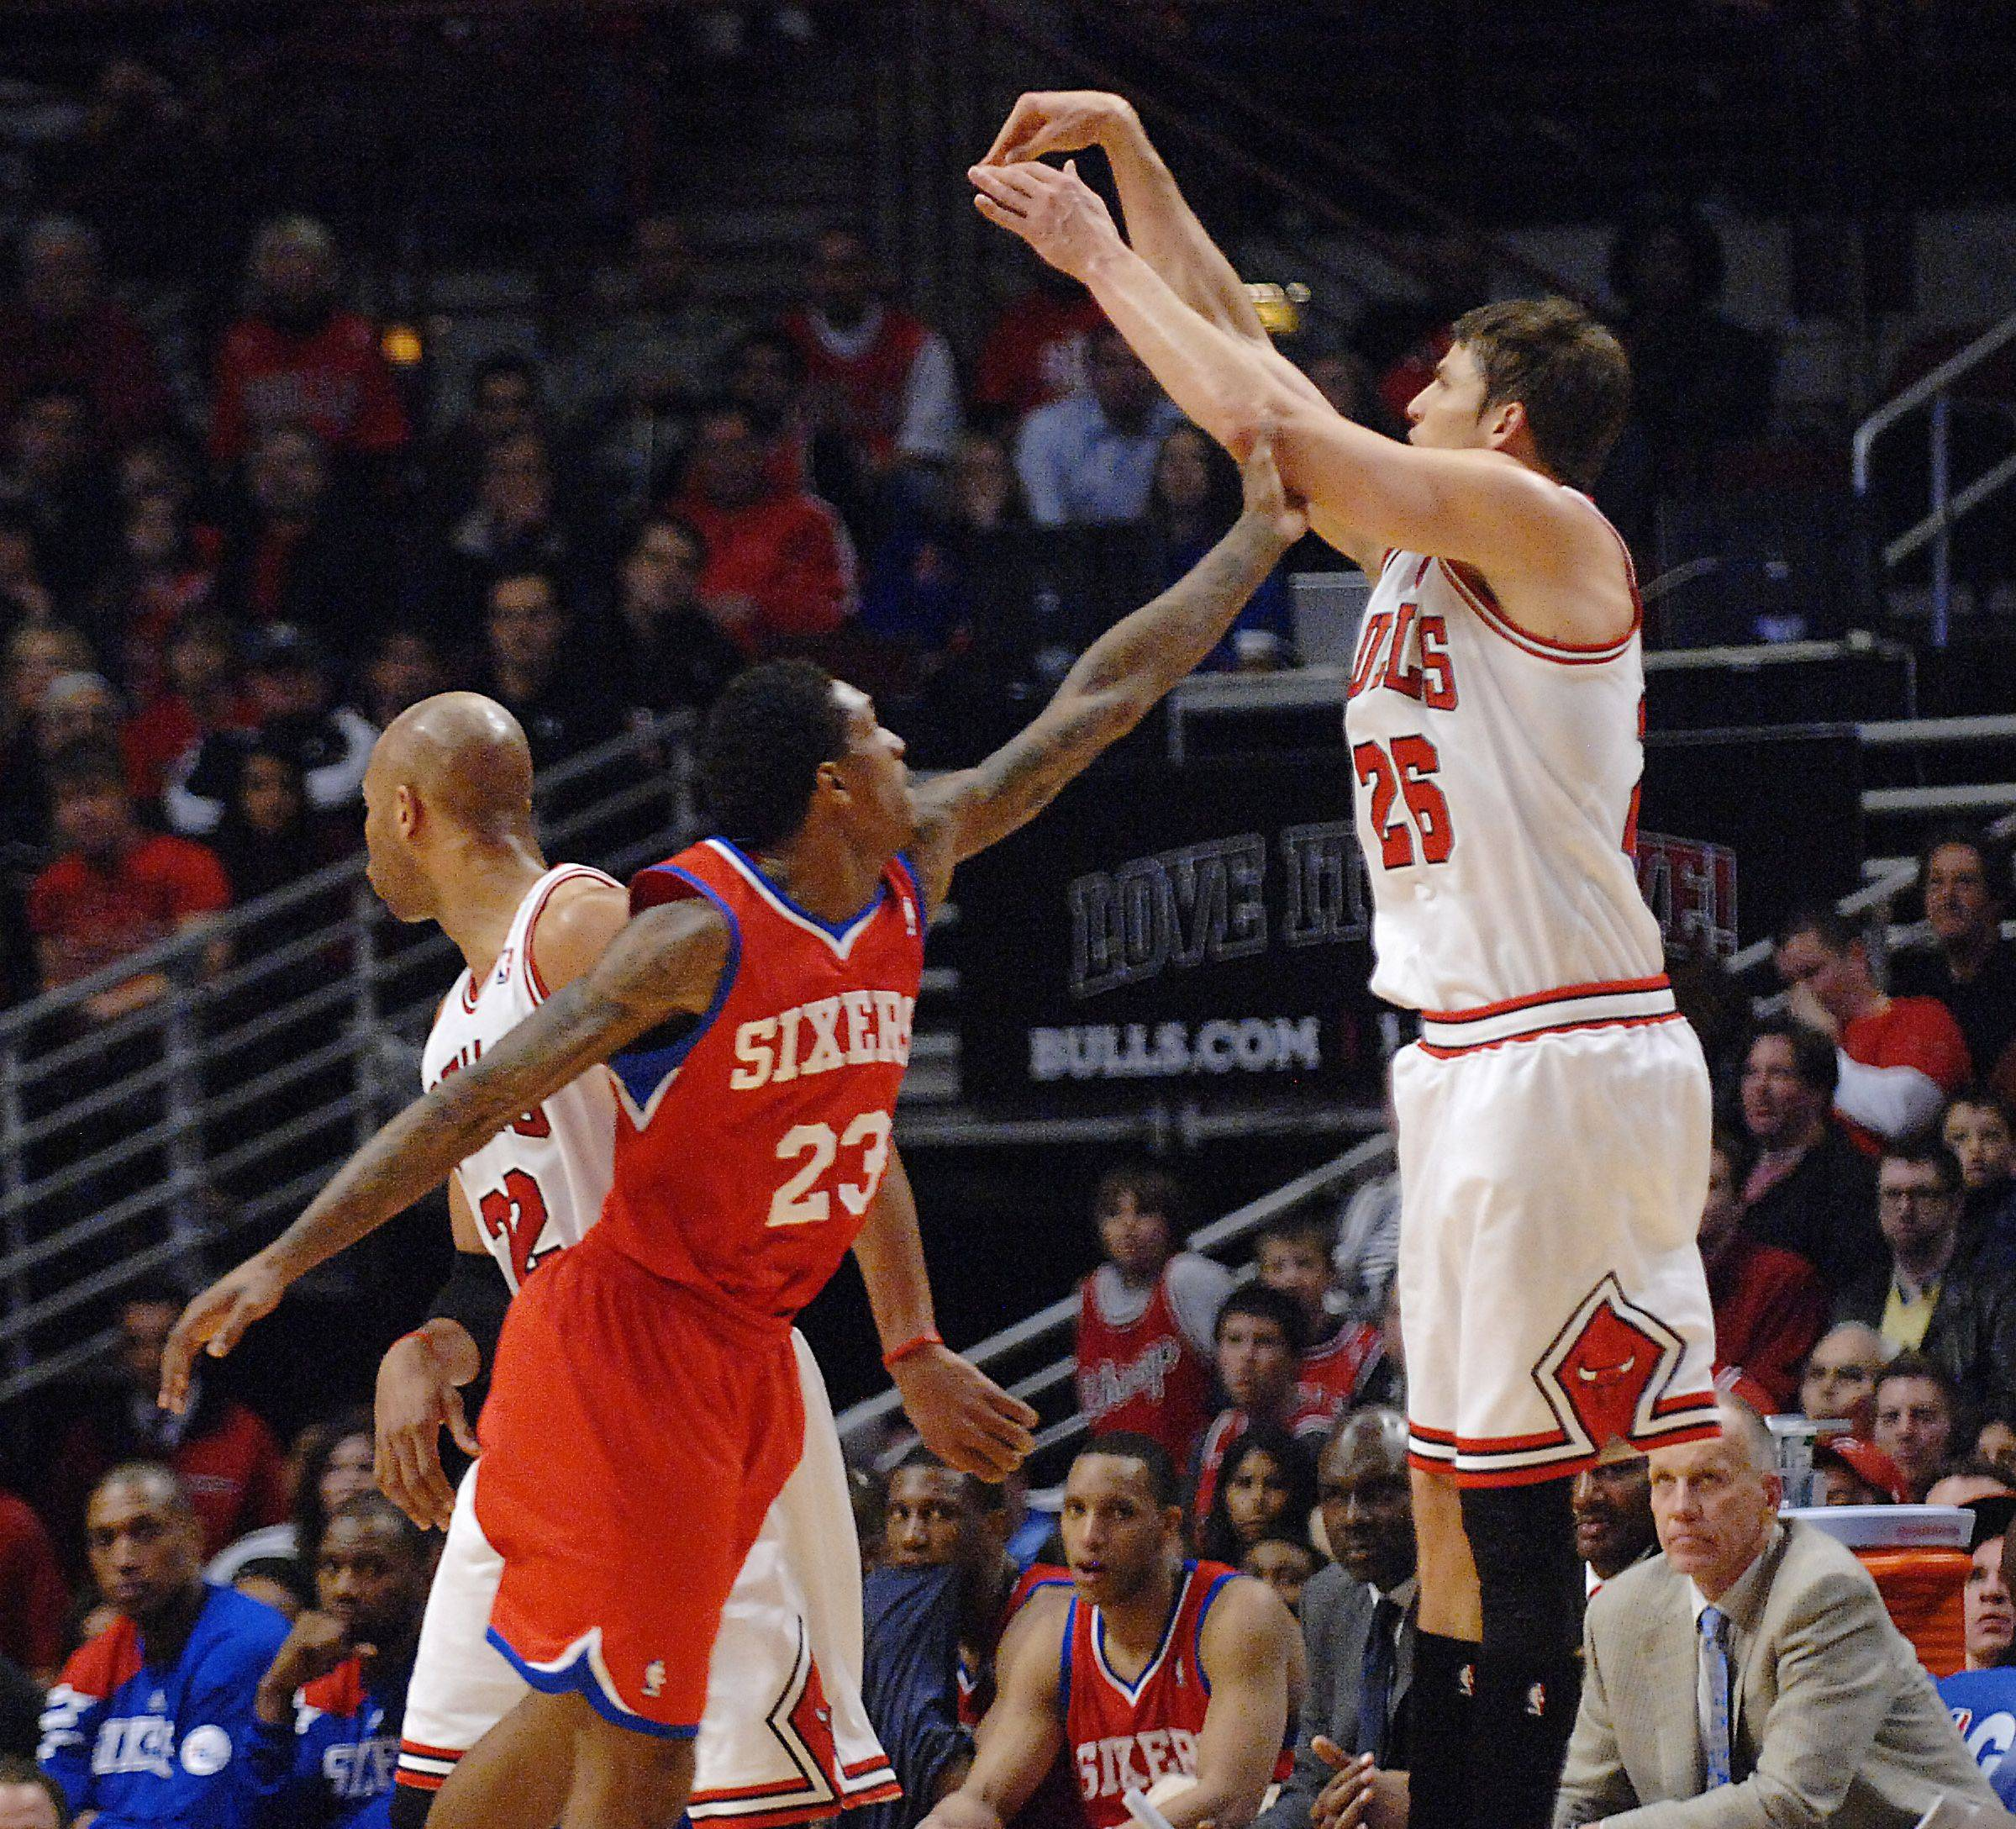 The Bulls� Kyle Korver, who suffered a rough first-round playoff series against the Sixers, has been traded to the Hawks, according to multiple reports.